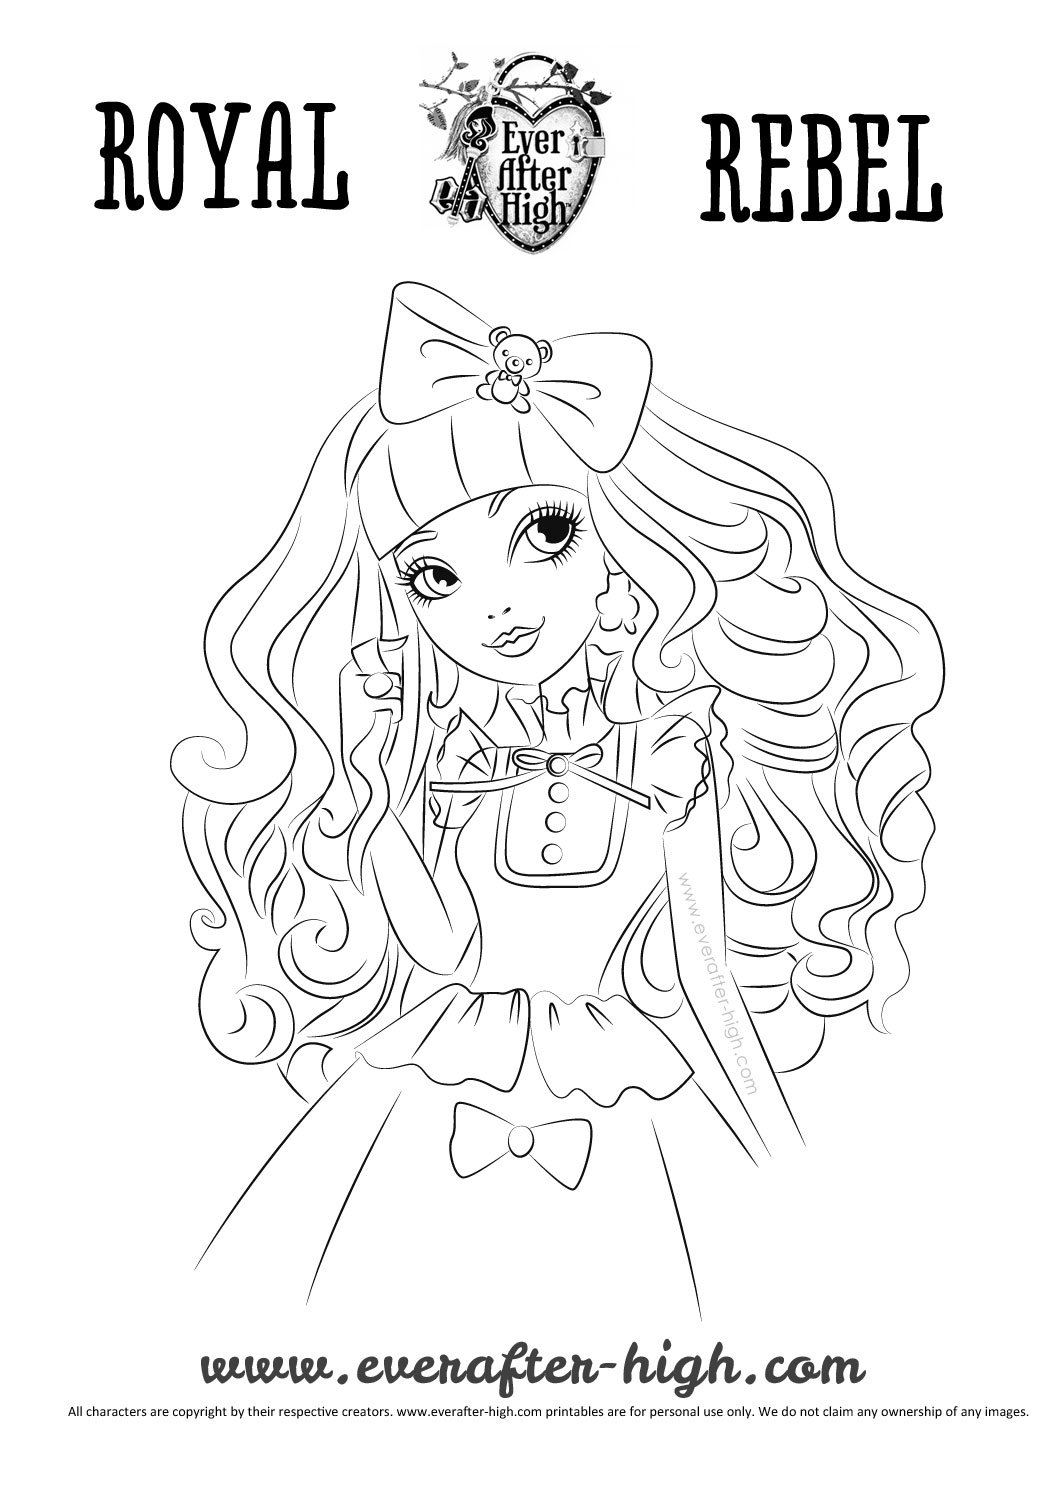 blondie lockes coloring page ever after high